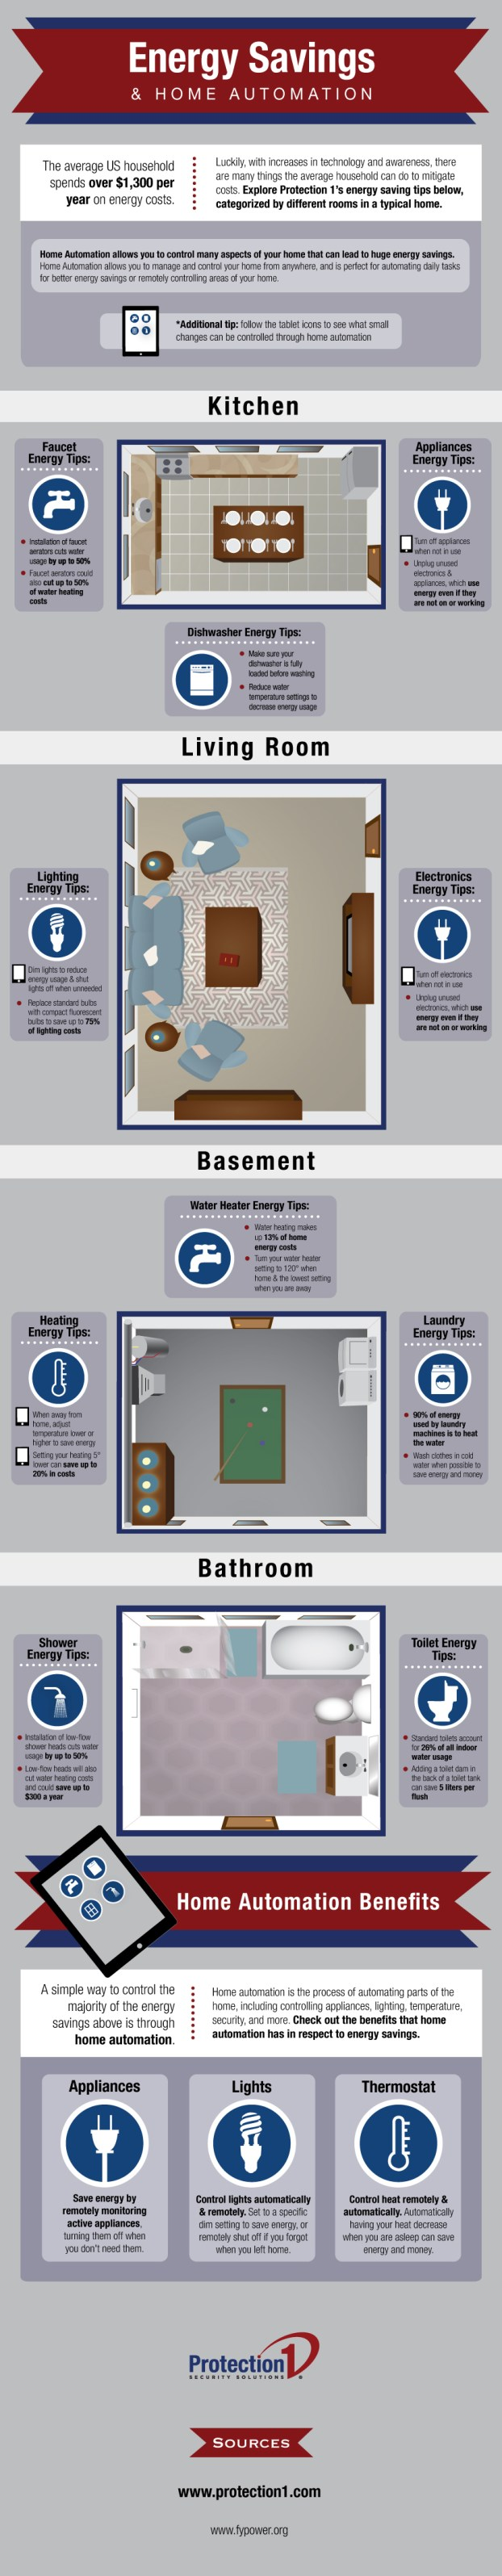 Home_Automation_Energy_Savings_Tips